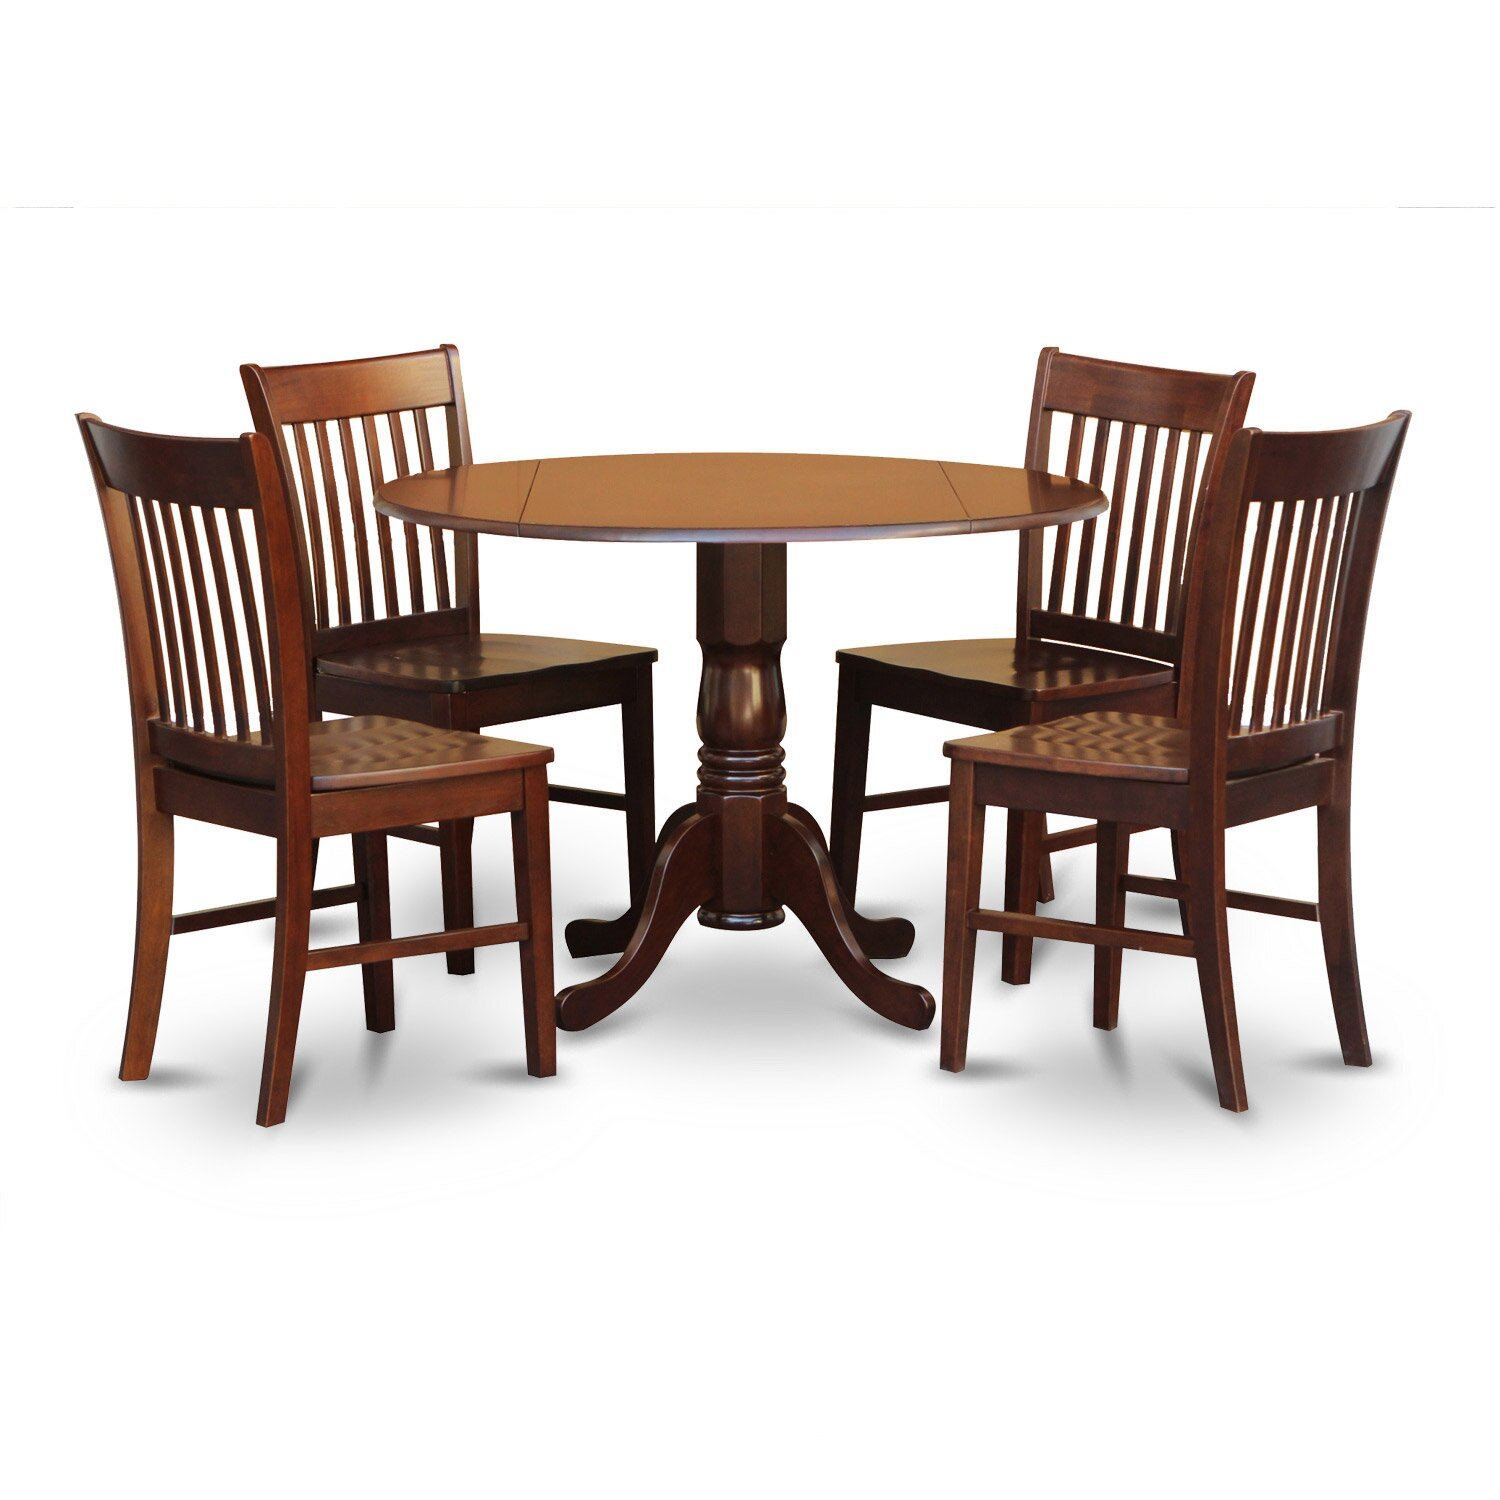 East west dublin 5 piece dining set reviews wayfair for Kitchen table and stools set